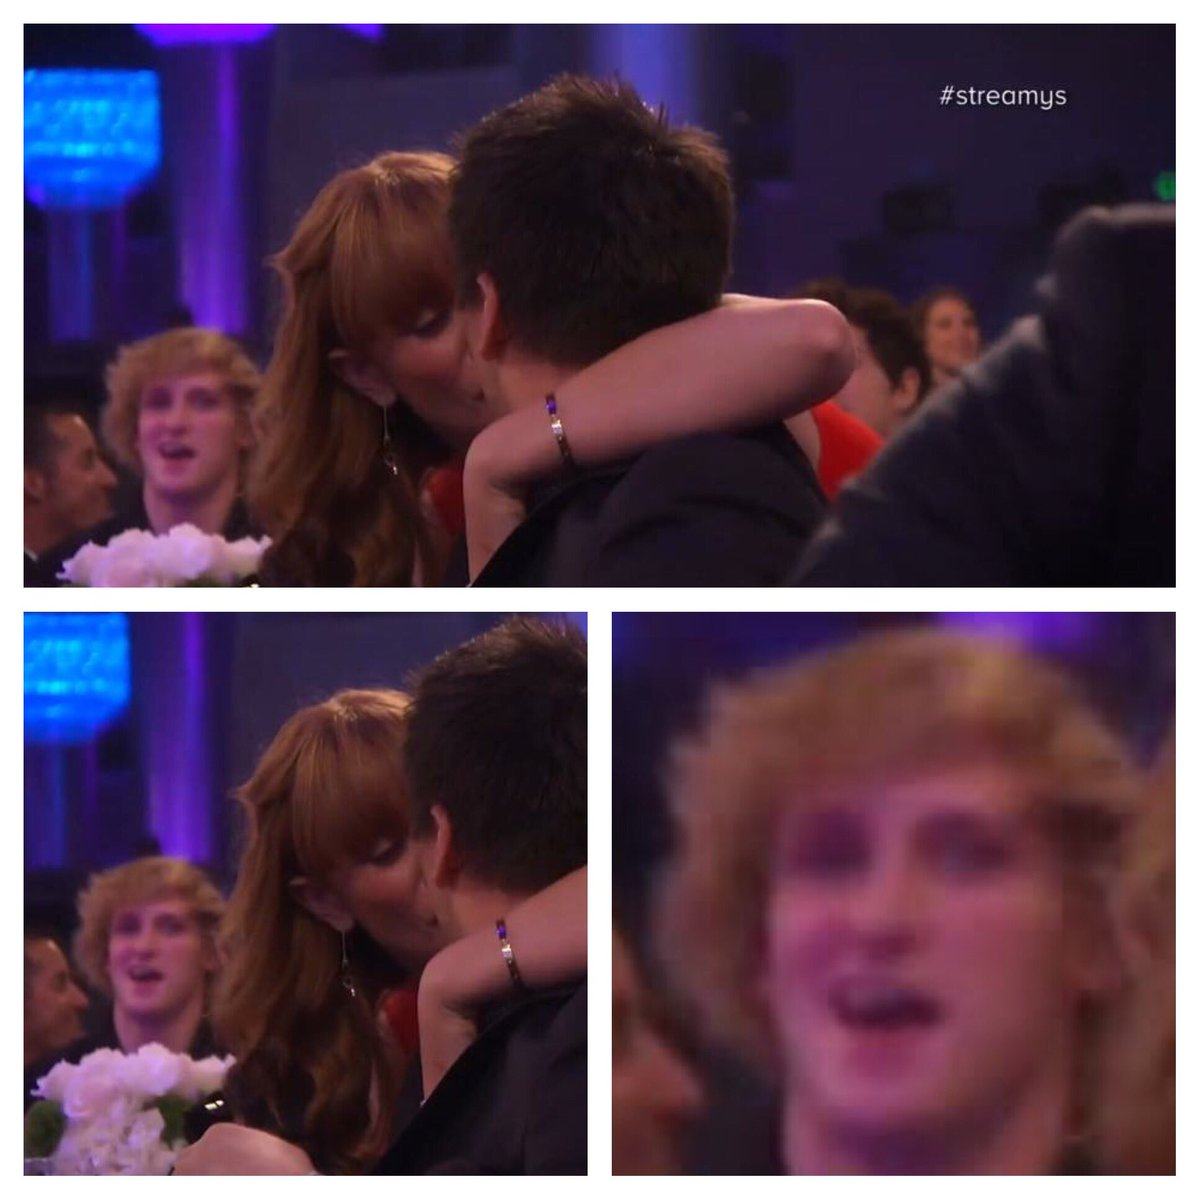 When your crush gets back with her boyfriend and you try and act happy for her @LoganPaul